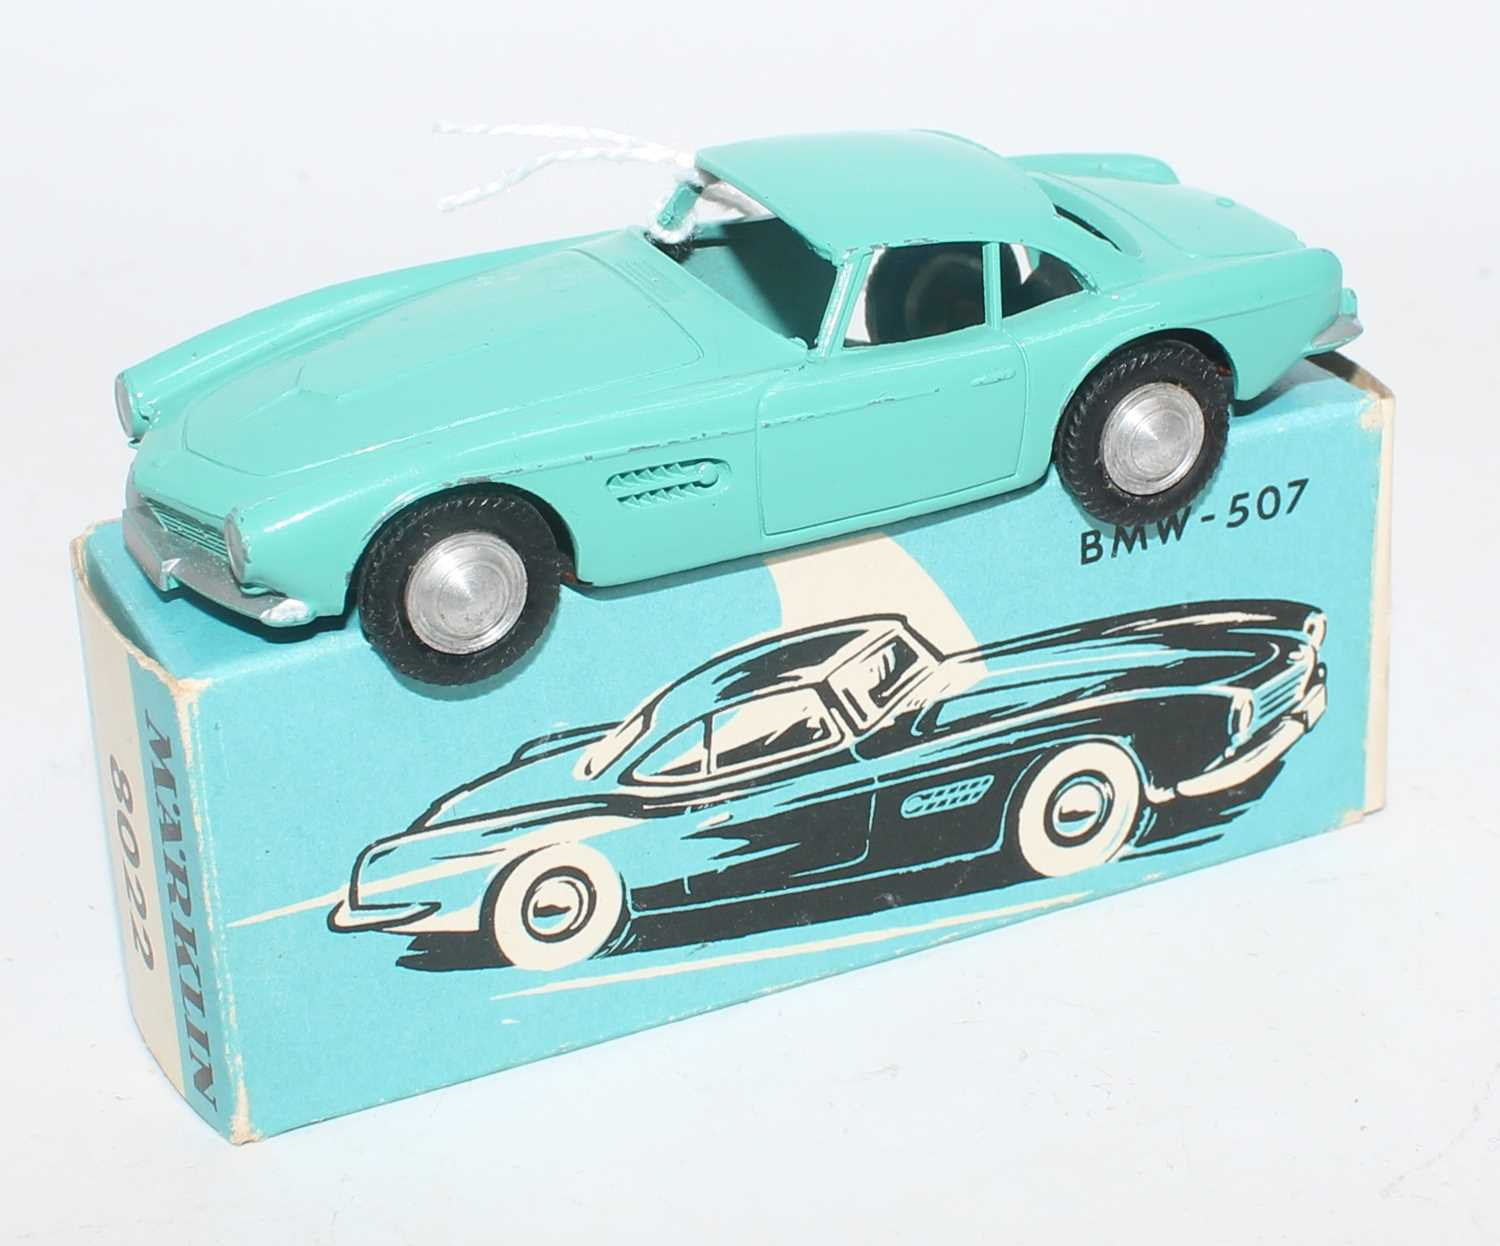 Marklin No.8022 model of a BMW 507 in turquoise with spun hubs and silver detailing, in the original